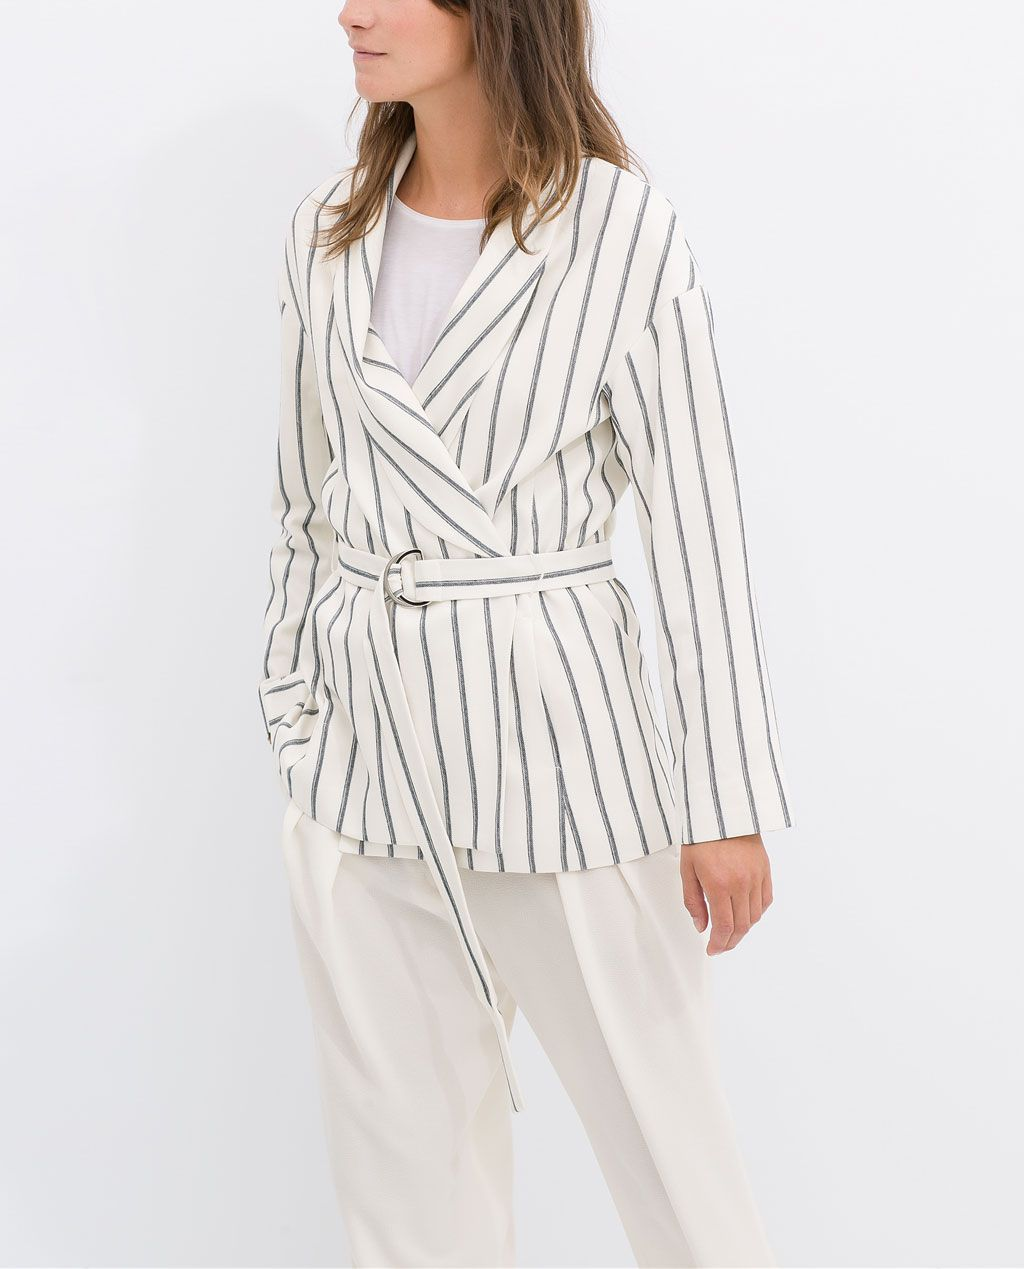 ZARA - SALE - Ecru/Navy STRIPED BLAZER WITH BELT